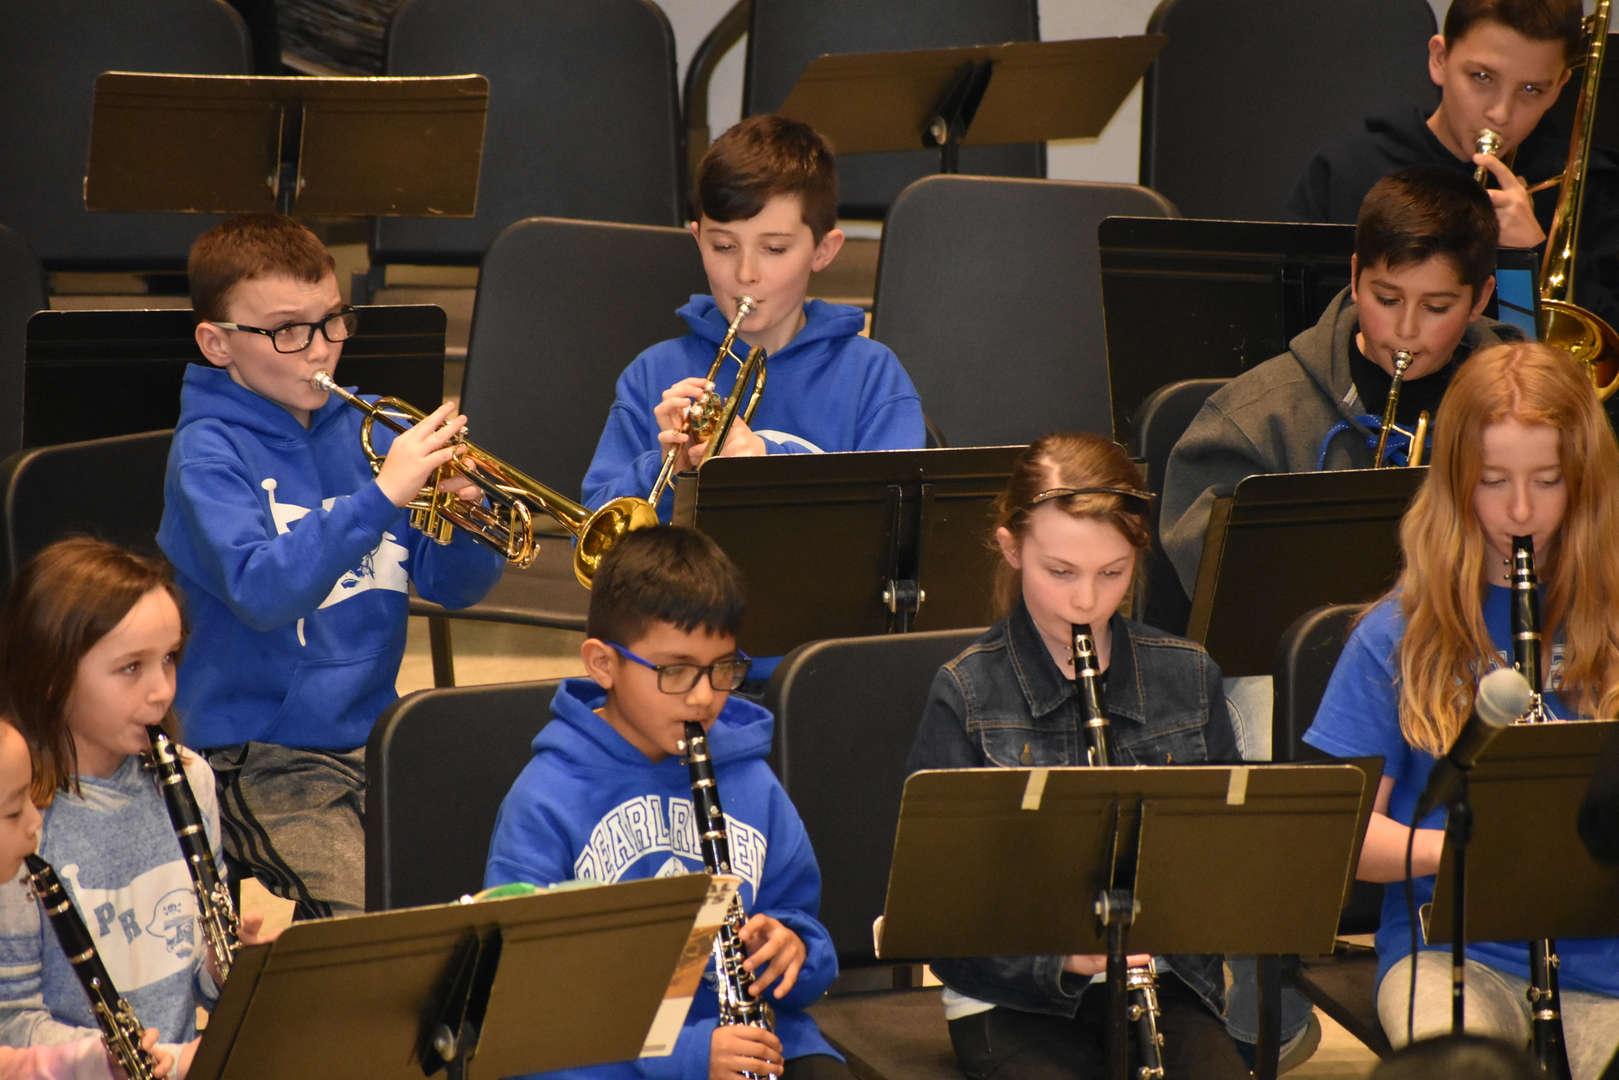 PRMS band practice